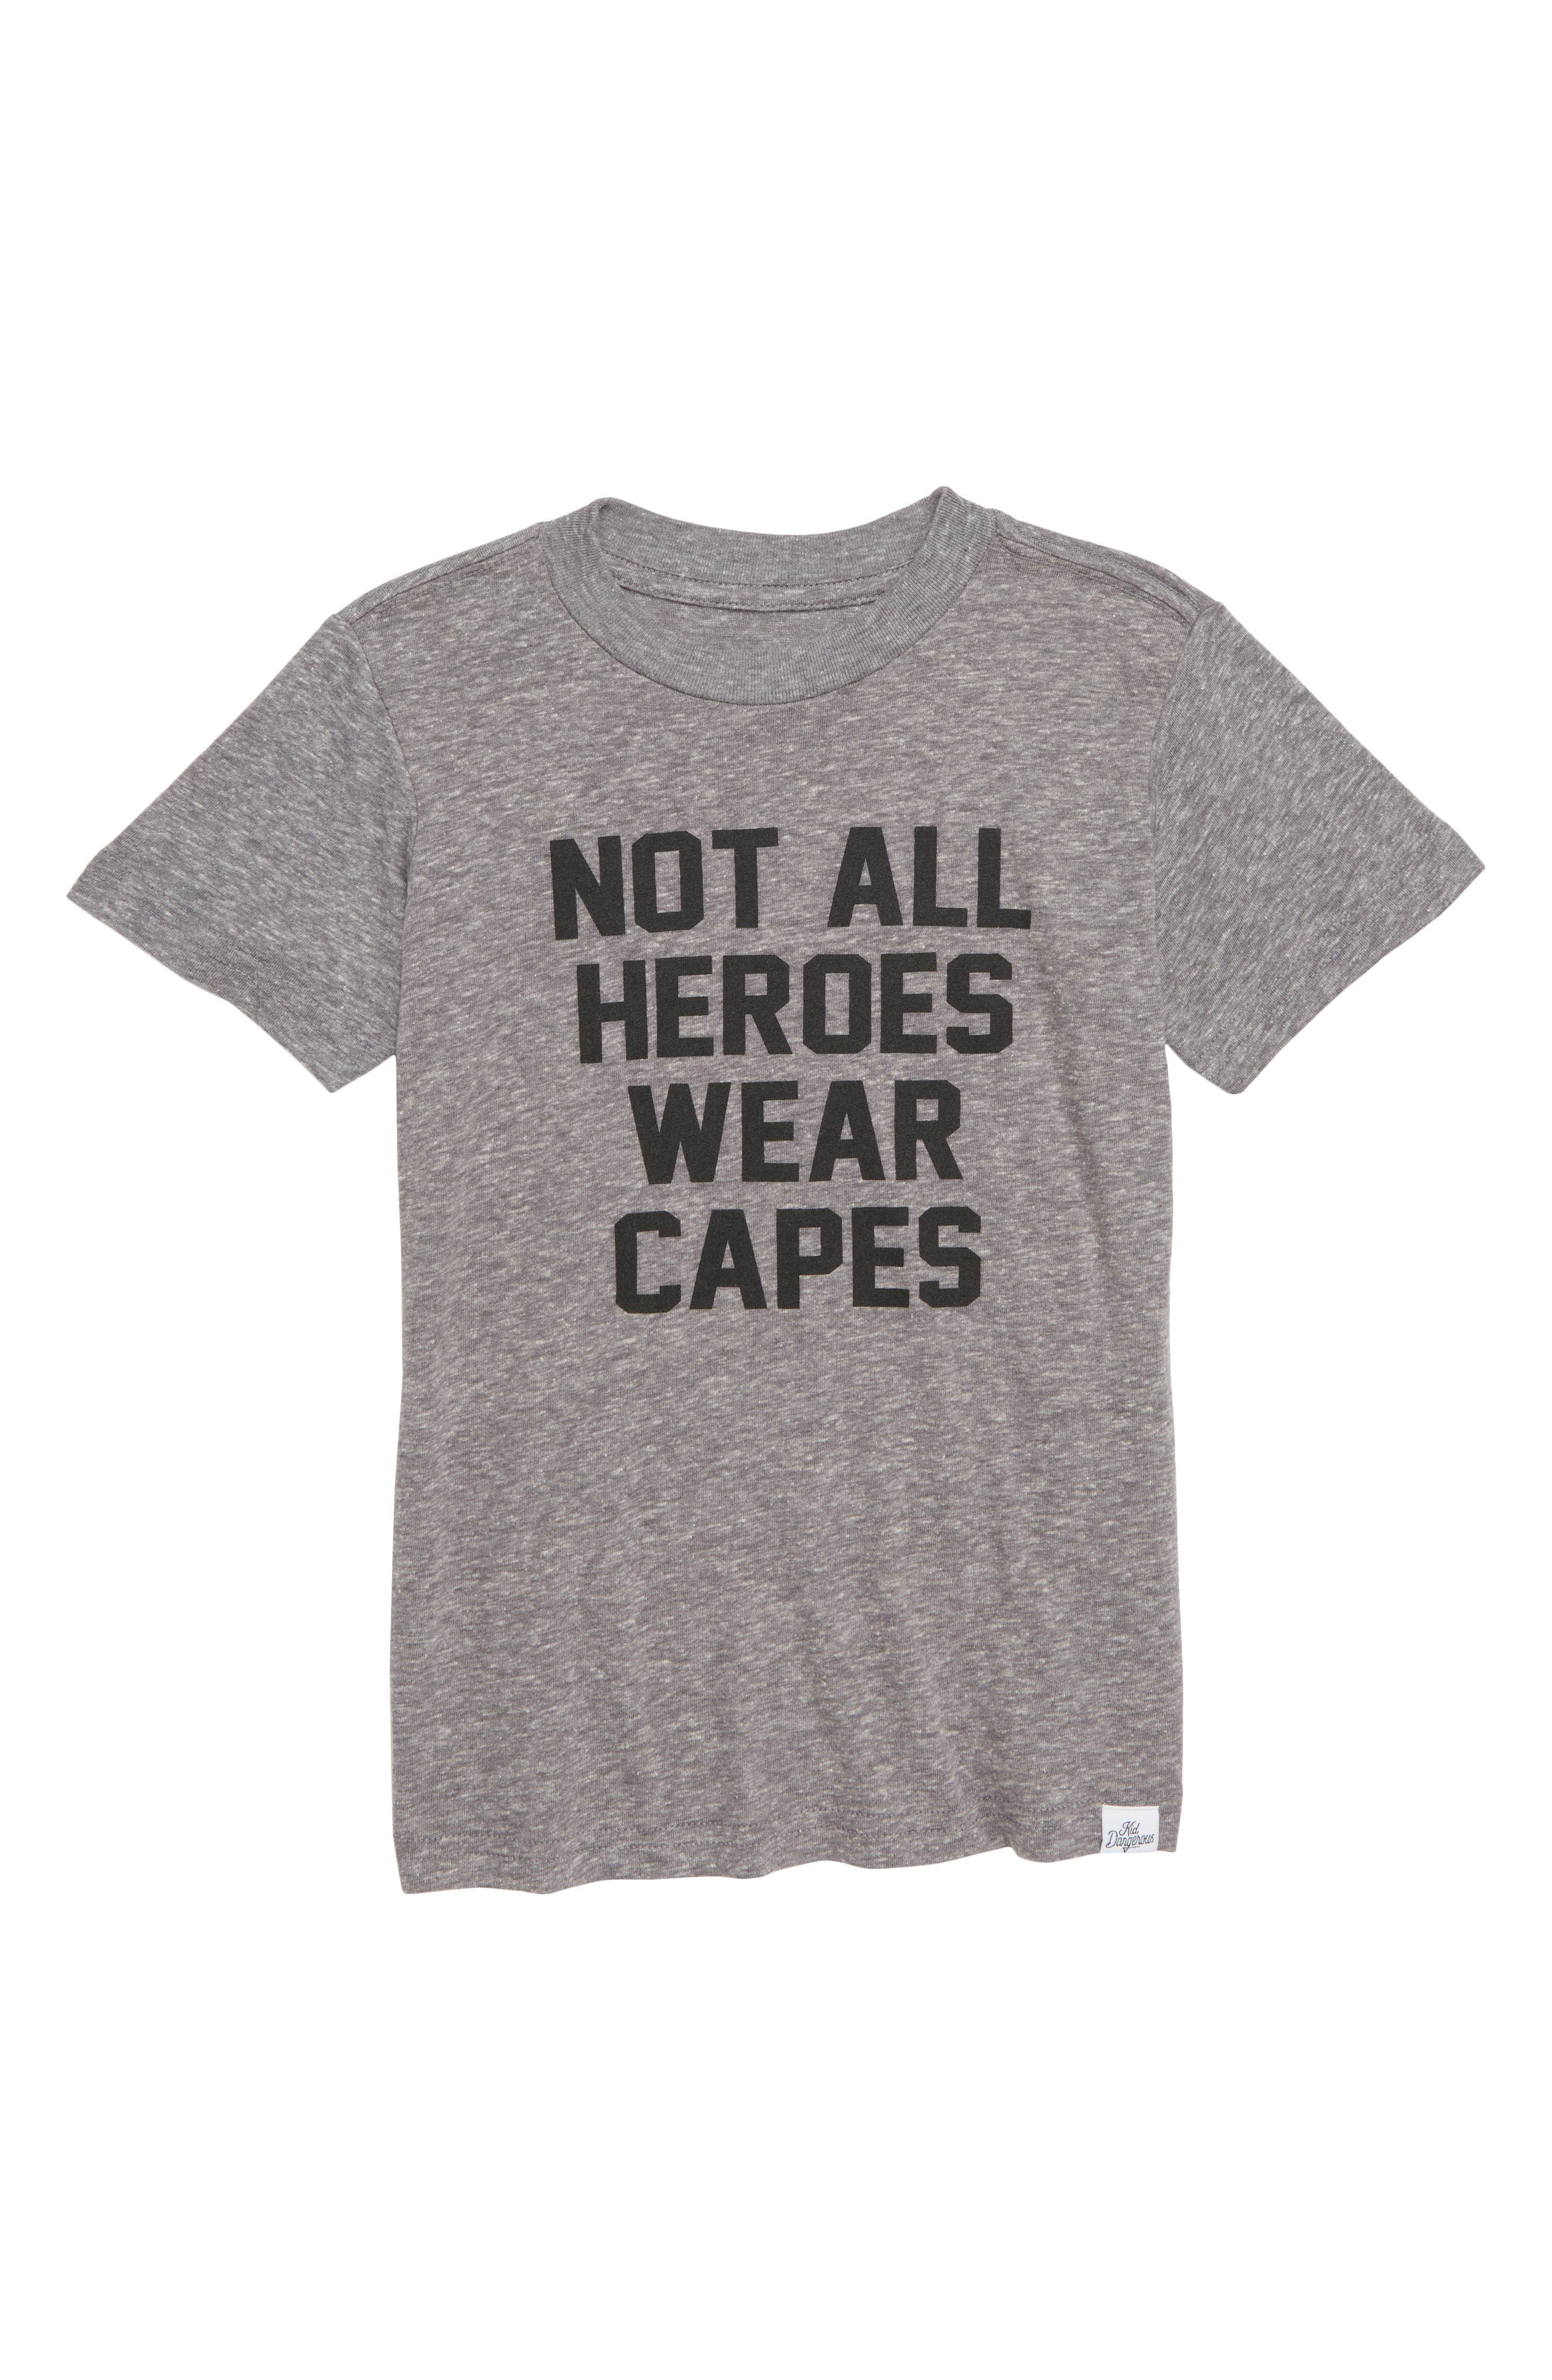 Not All Heroes Wear Capes Graphic T-Shirt,                             Main thumbnail 1, color,                             030